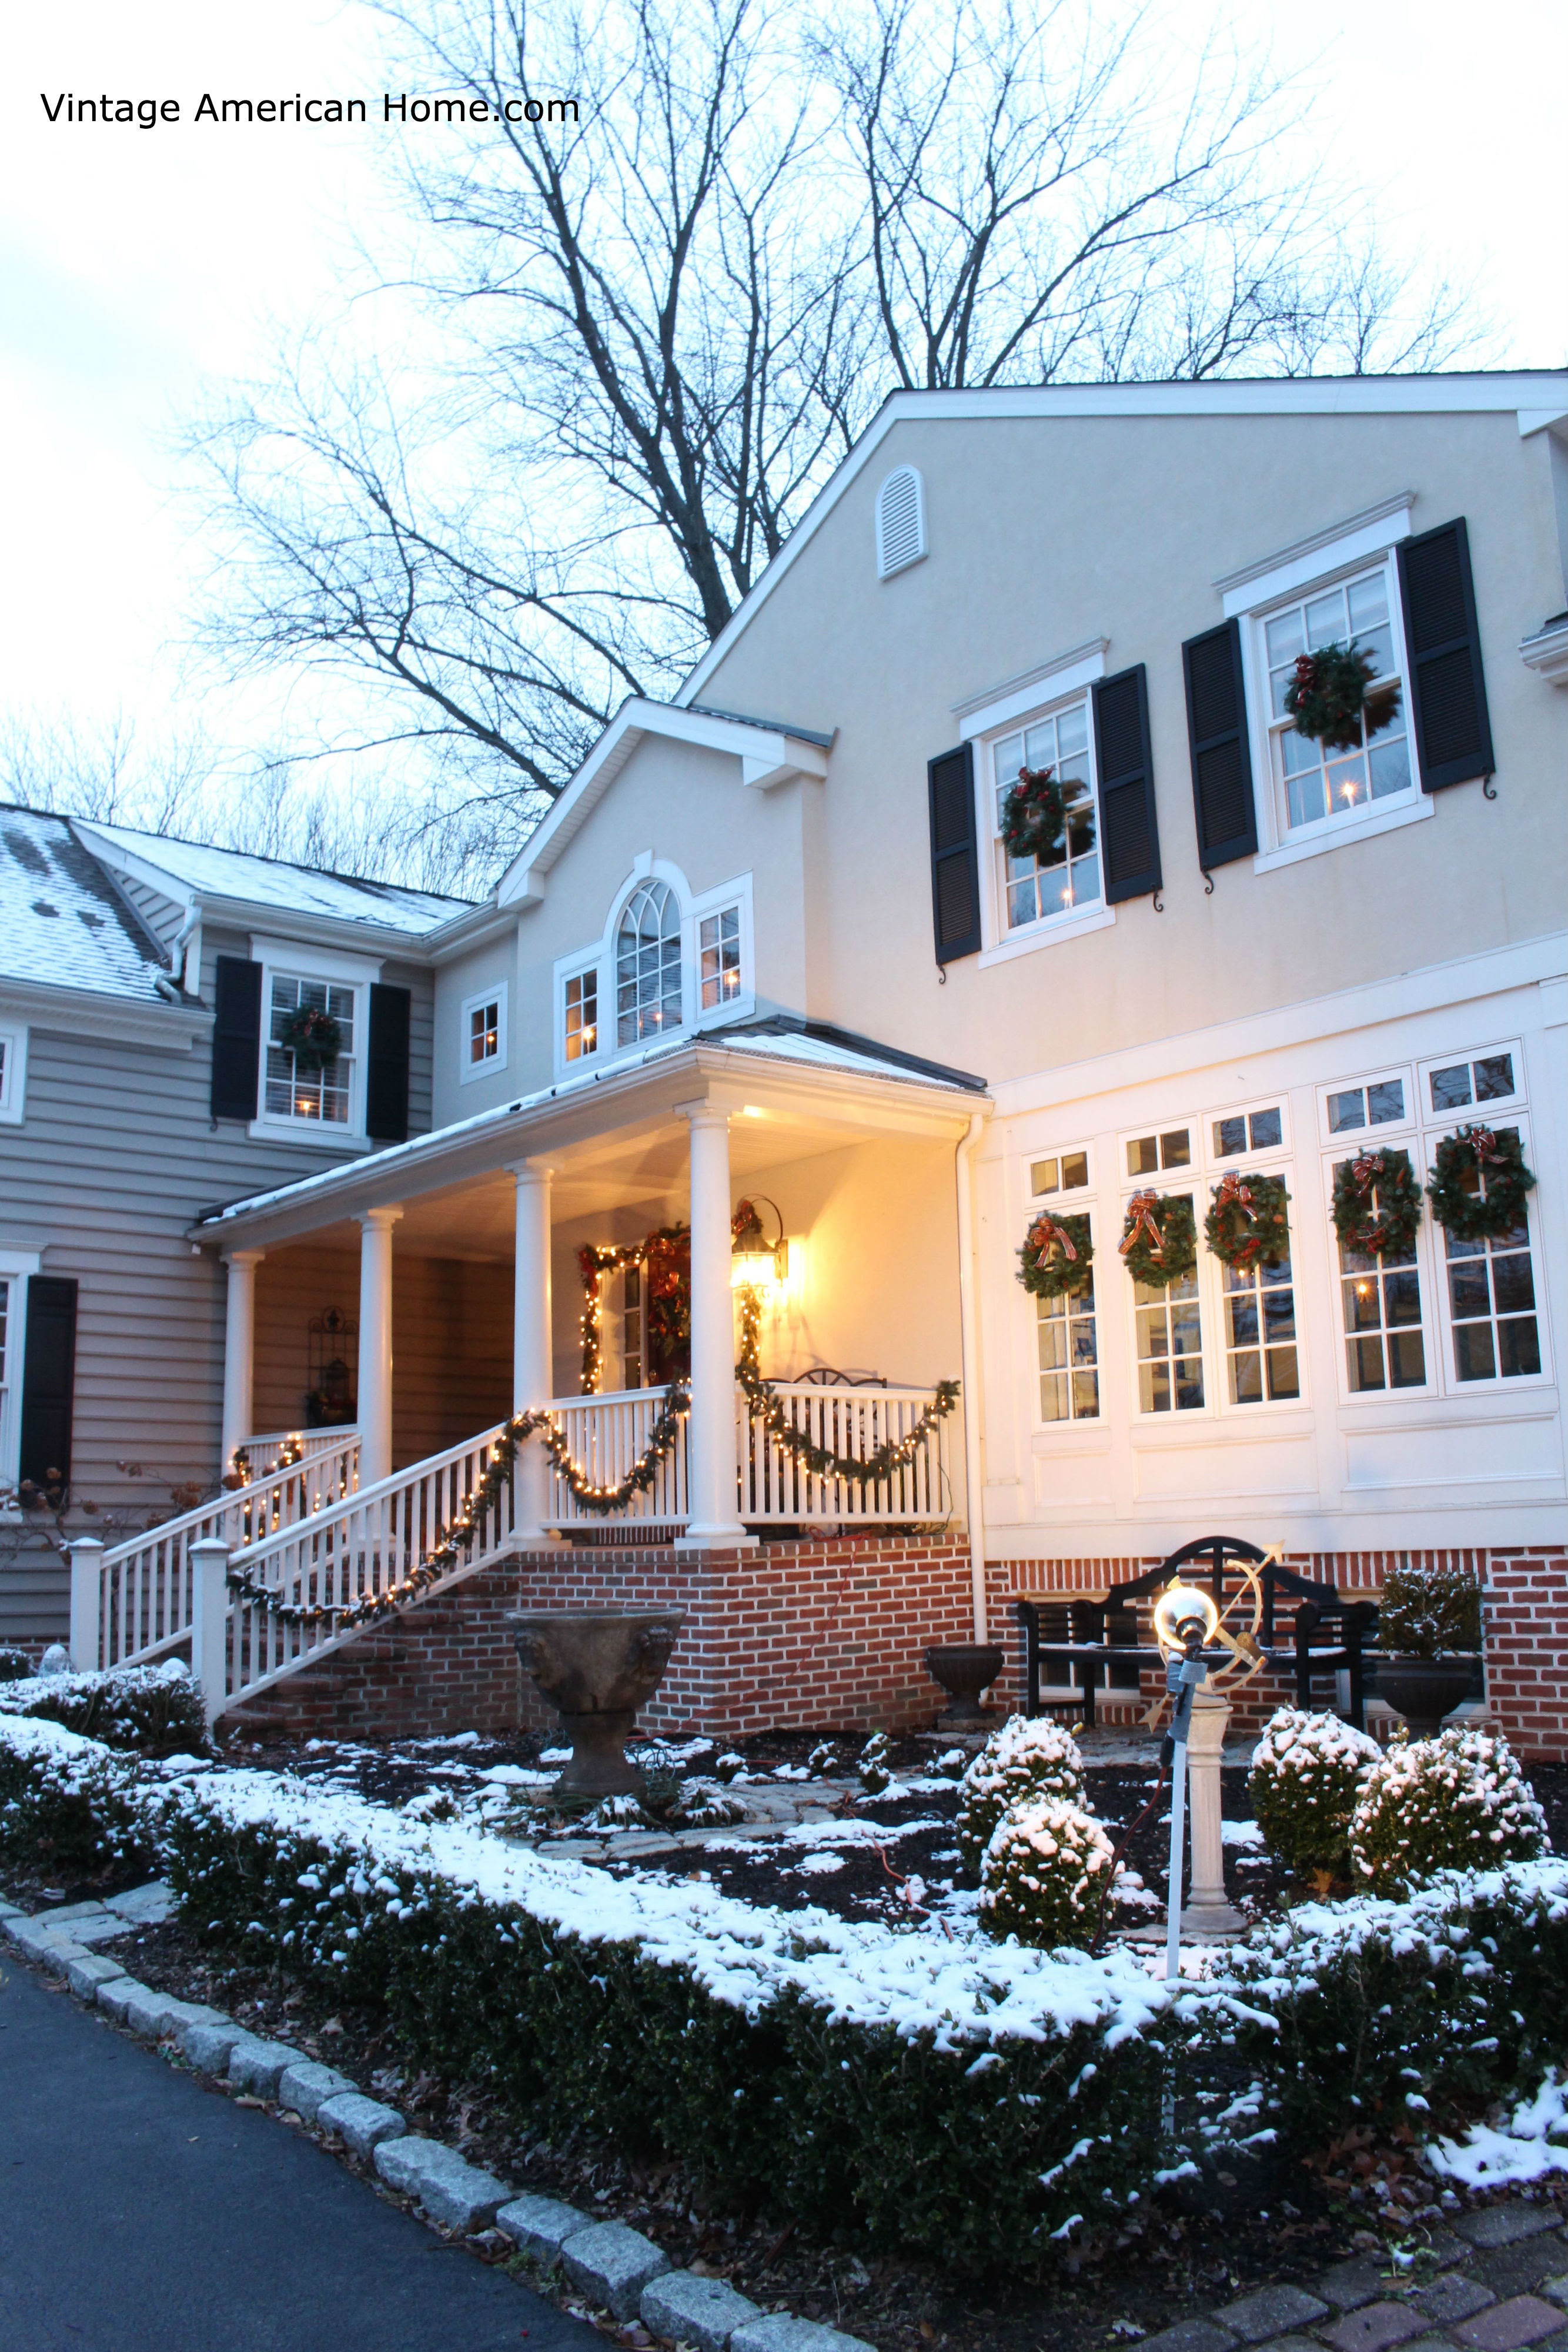 Decorating The Outside Of Your House For Christmas Vintage American Home